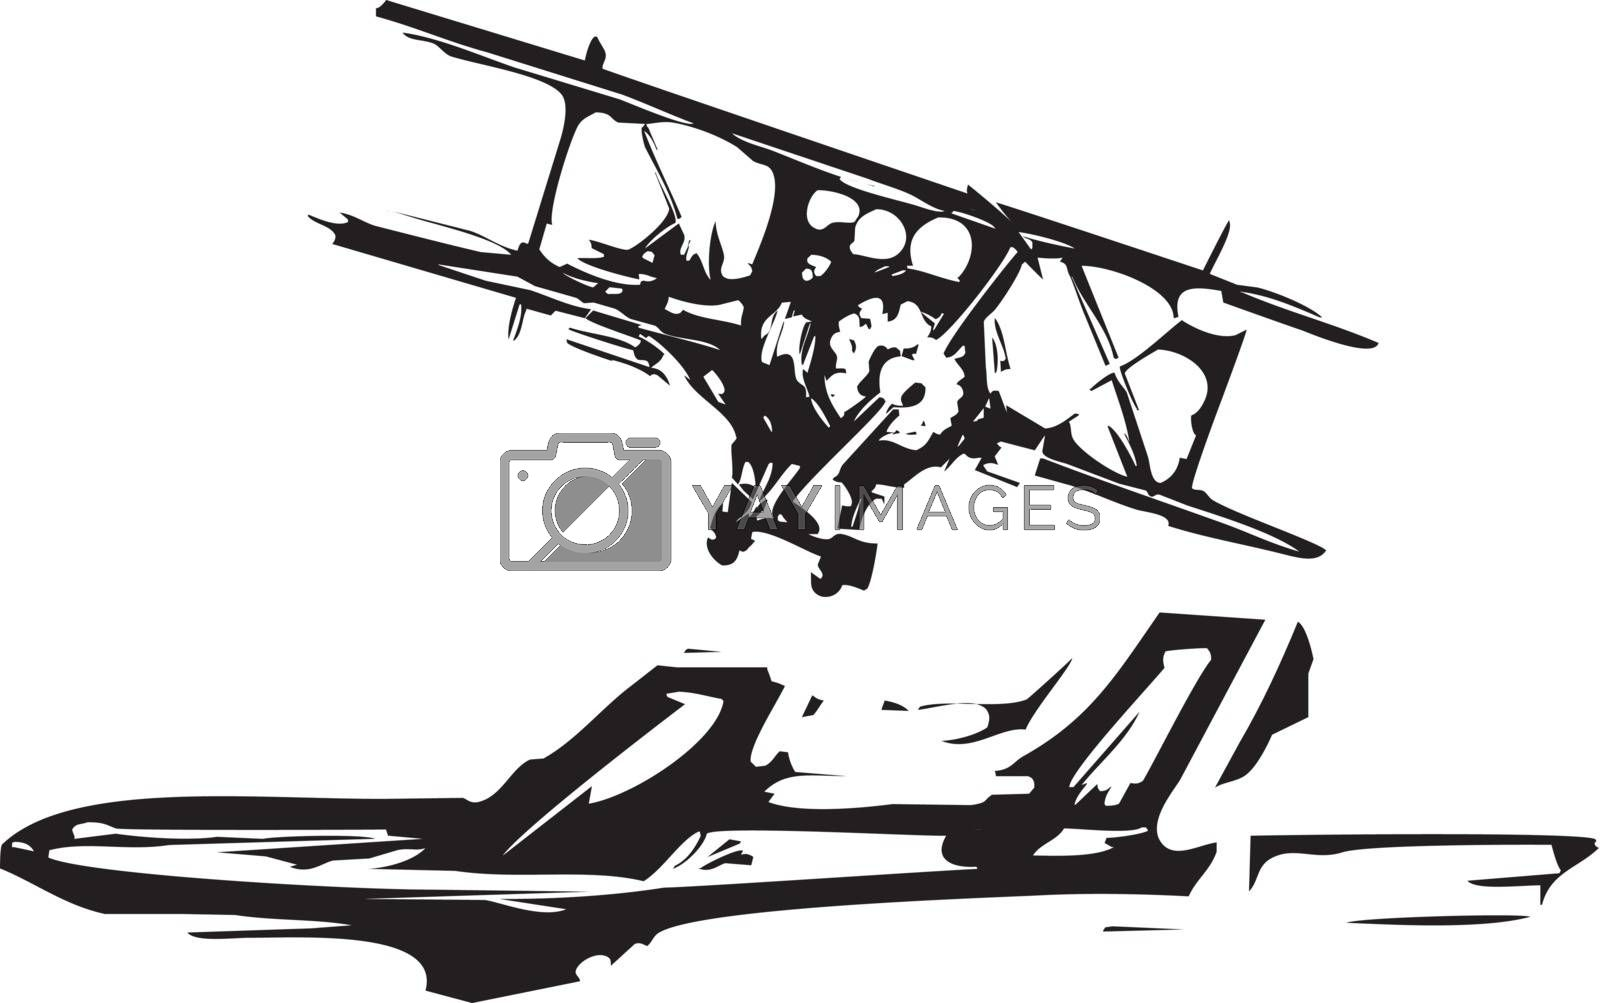 Rough woodcut style images of a jet and a biplane aircraft.